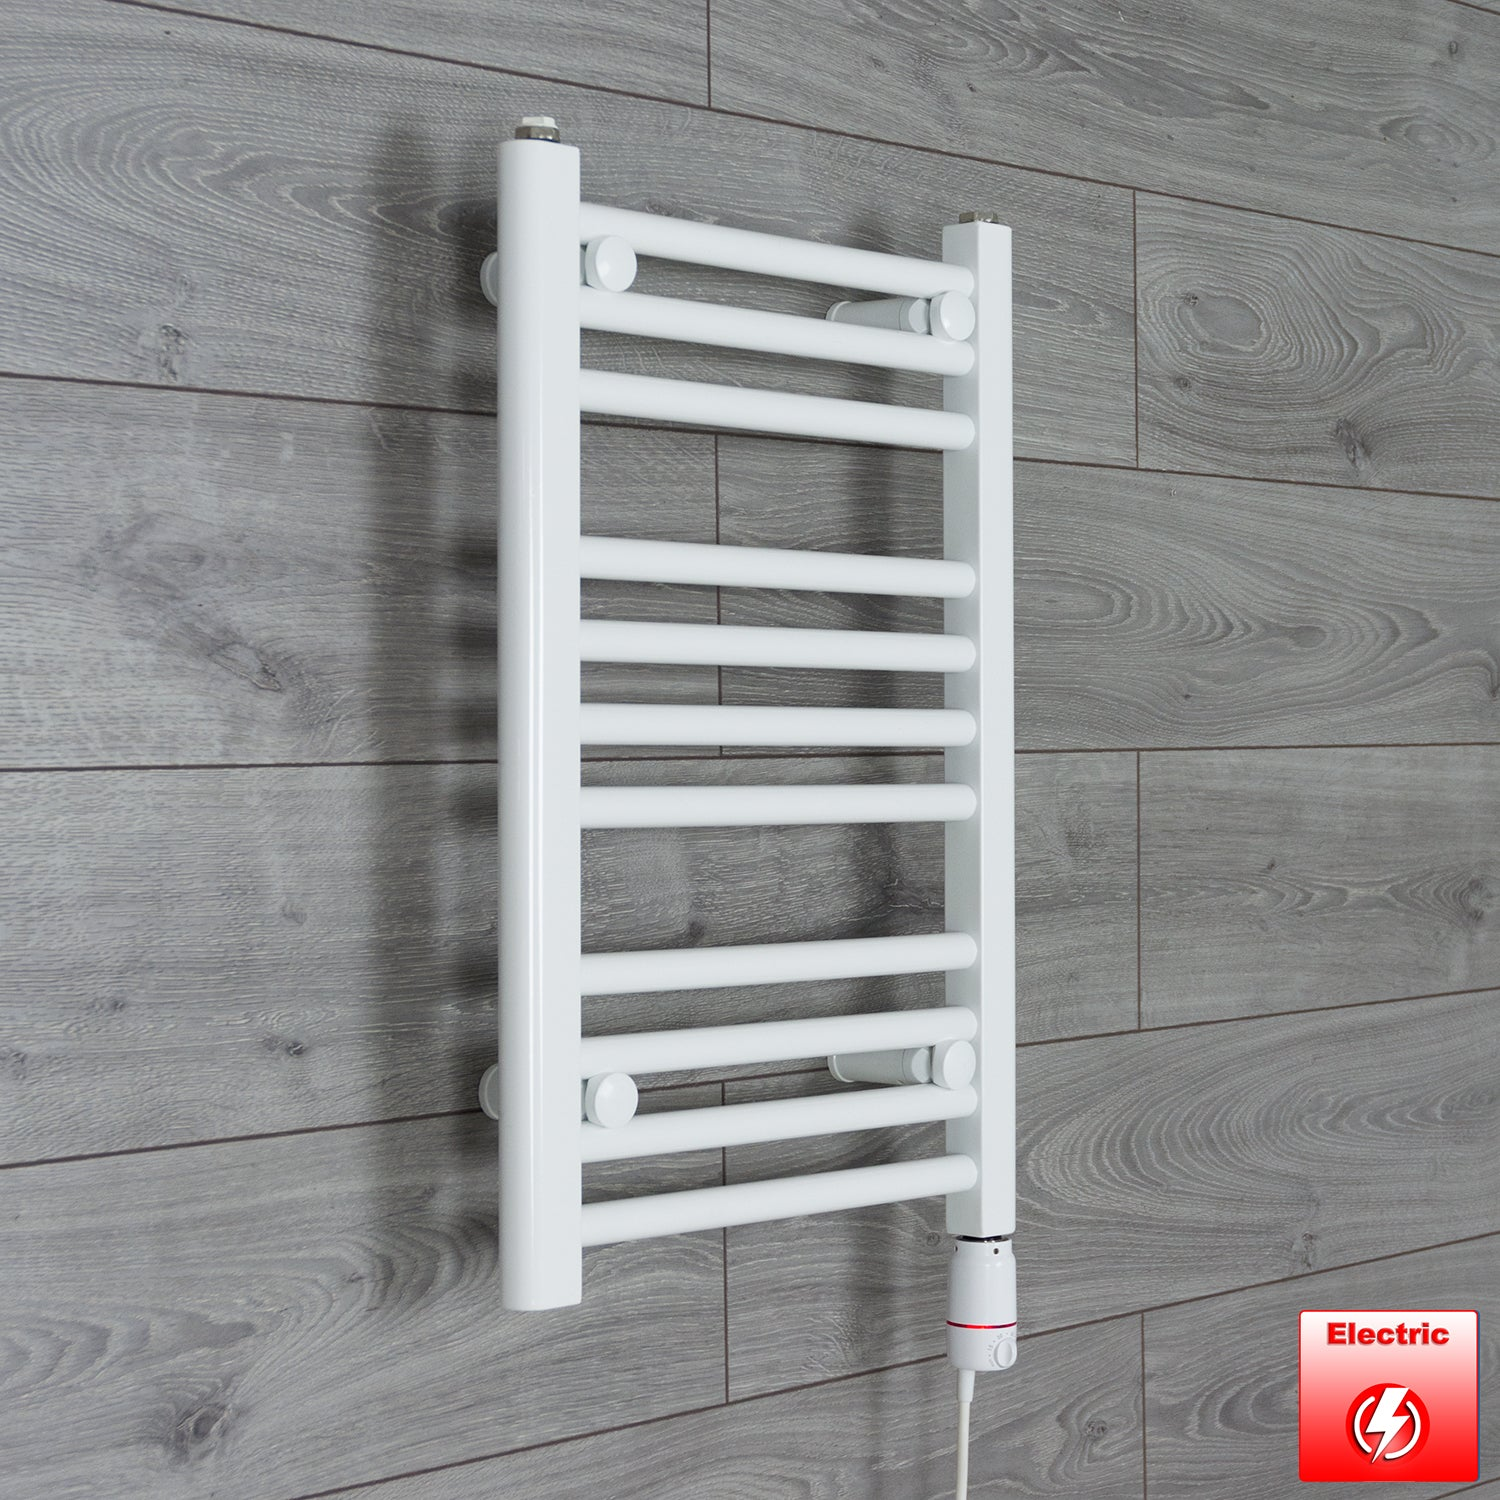 4500mm Wide 600mm High Pre-Filled White Electric Towel Rail Radiator With Thermostatic GT Element